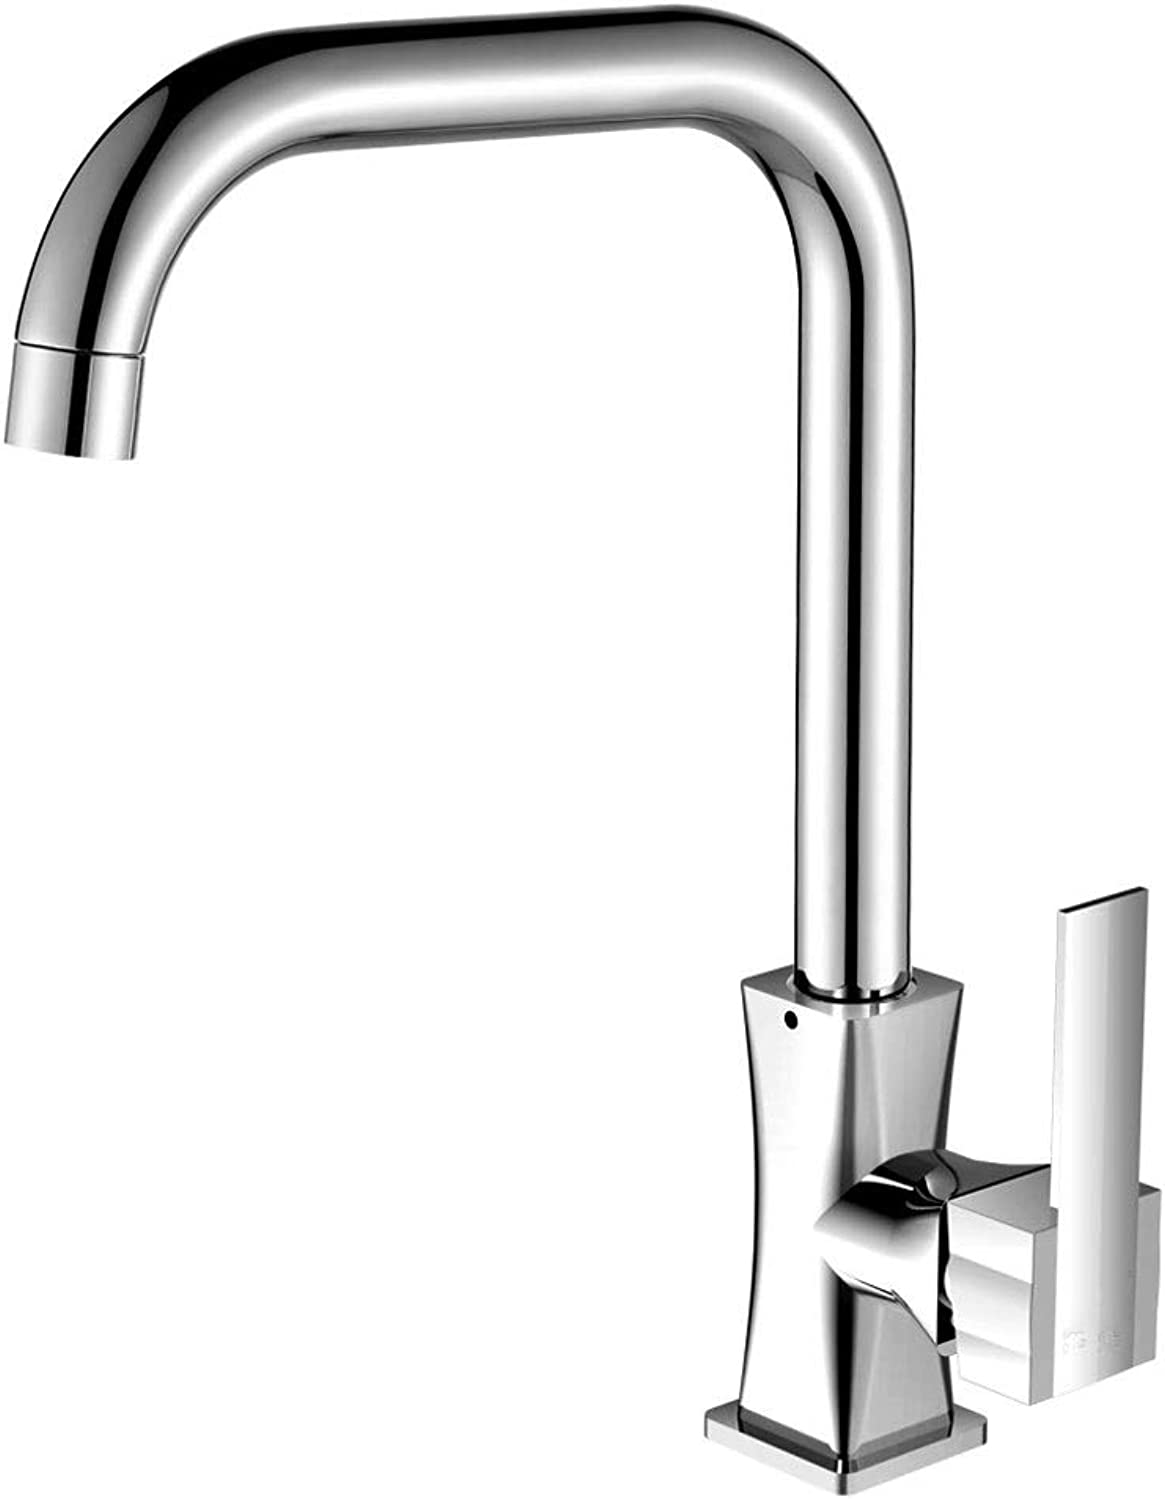 ZQG redating Kitchen Faucet, 304 Stainless Steel Sink Faucet Faucet